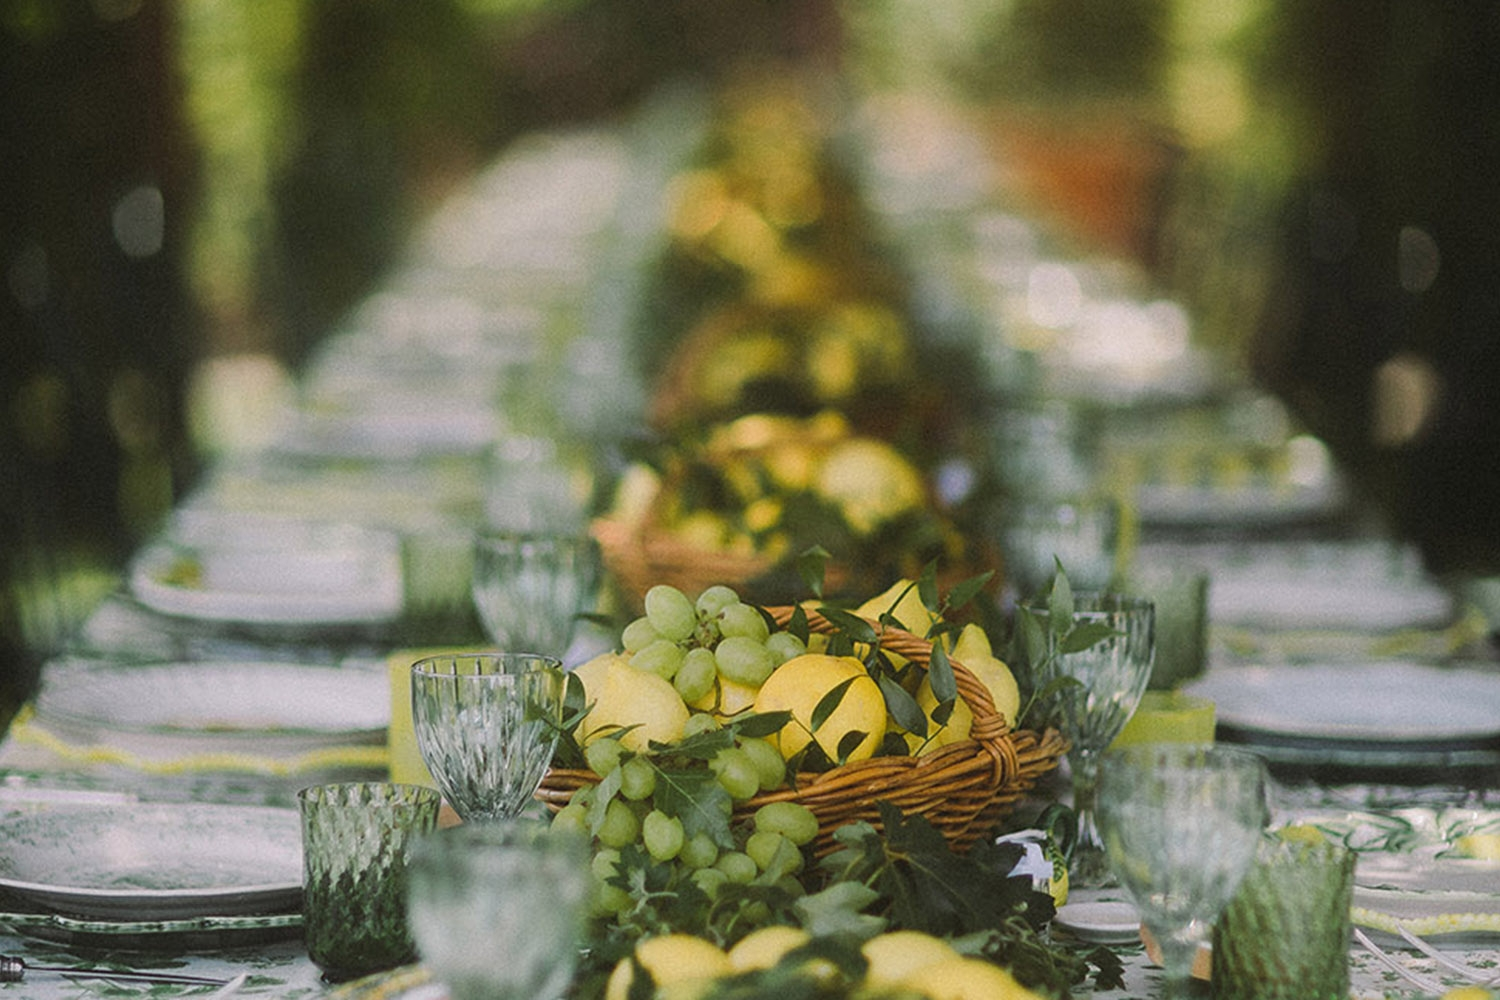 A long rectangular table has been set for lunch with wicker baskets of lemons and grapes as the centerpiece, light green crystal glasses and patterned plate settings.